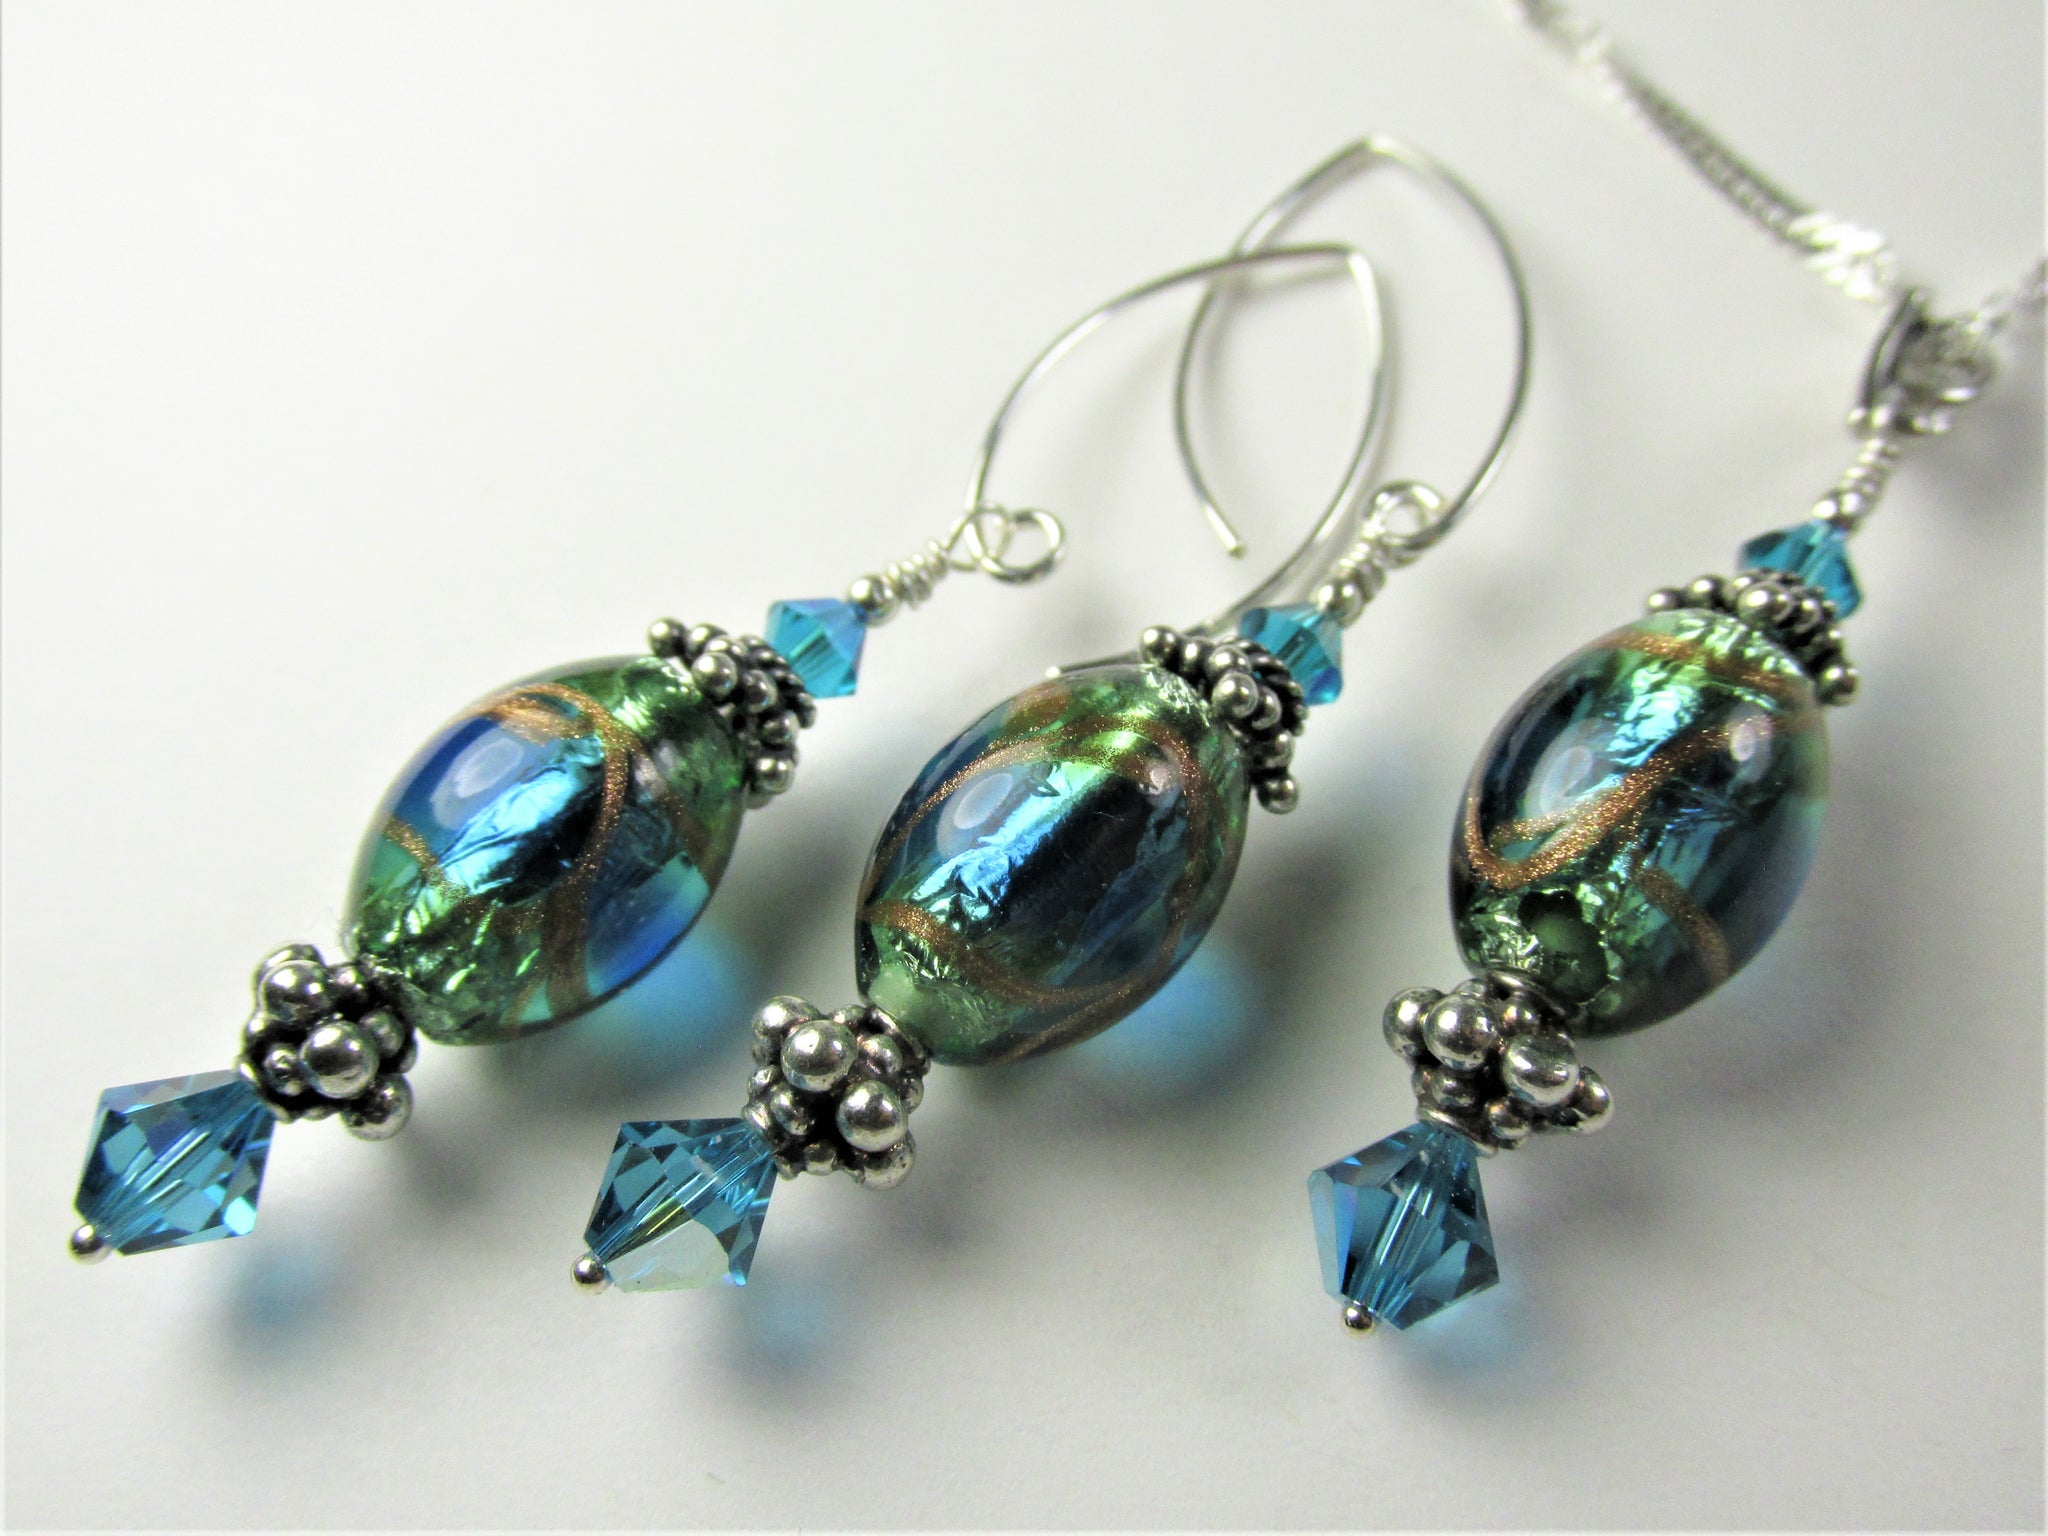 Teal Murano Lampwork Glass Necklace and Earring Set on Sterling Silver - Odyssey Creations